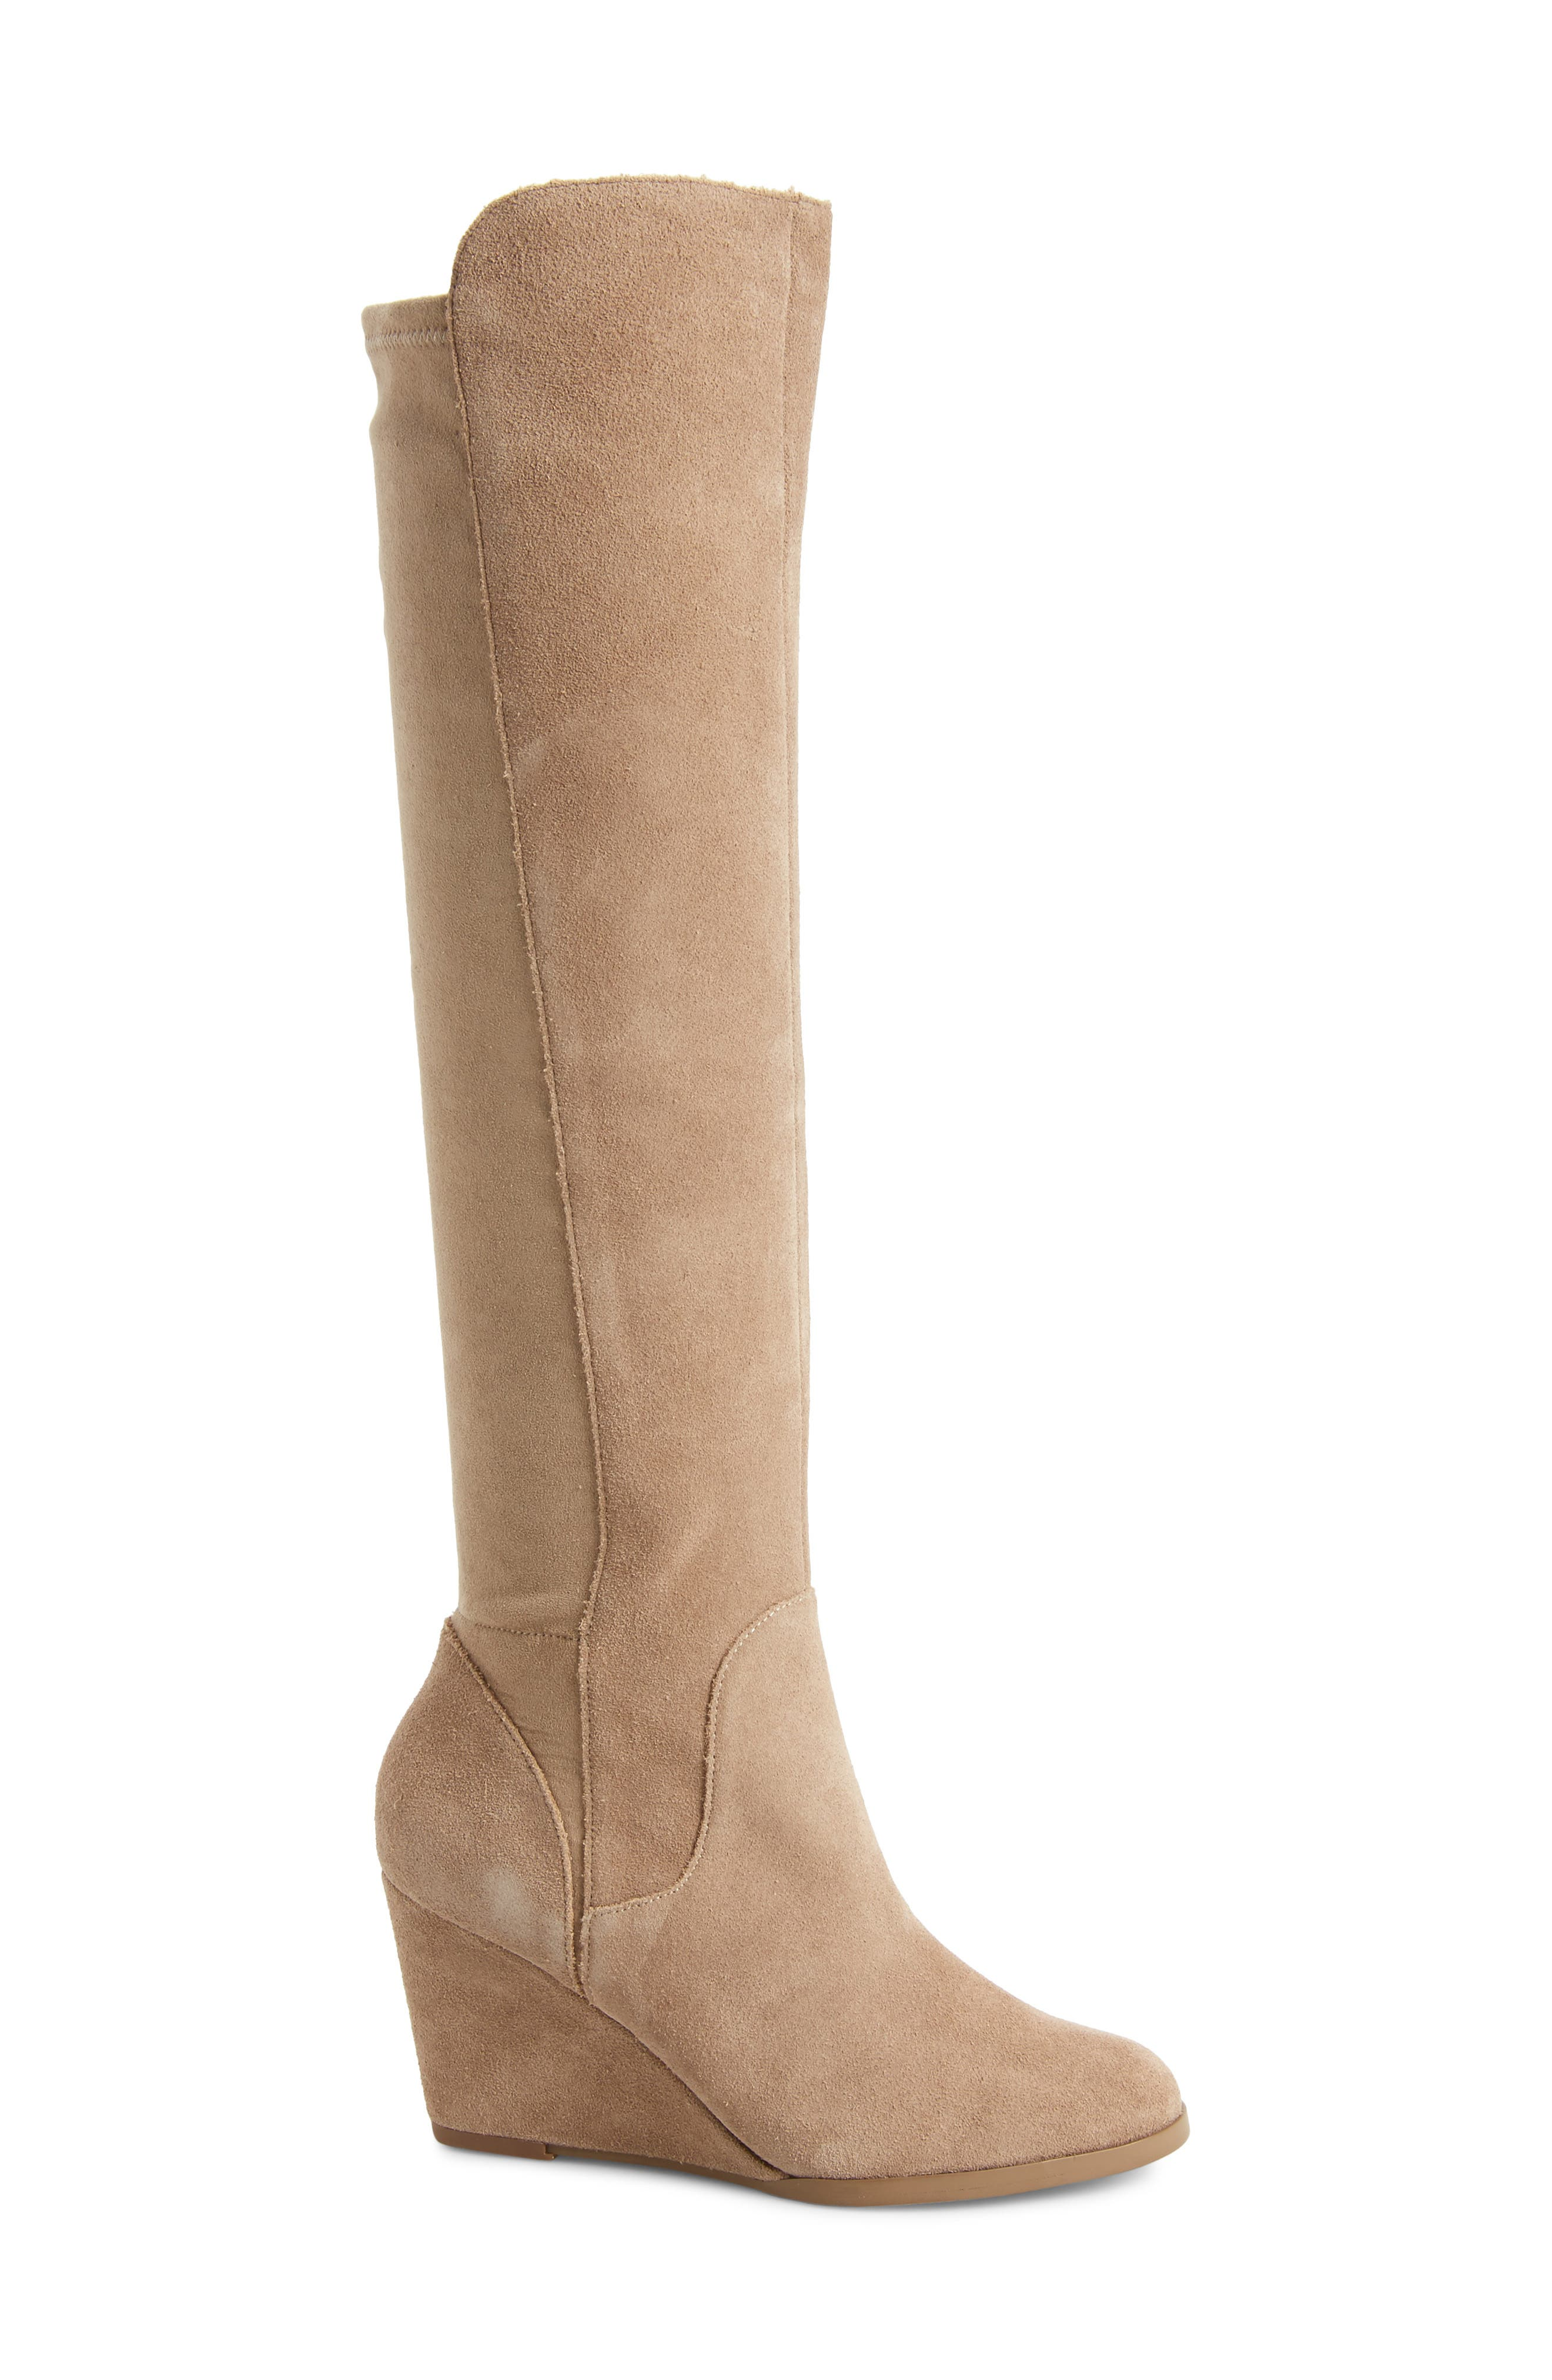 SOLE SOCIETY, Laila Boot, Alternate thumbnail 3, color, TAUPE